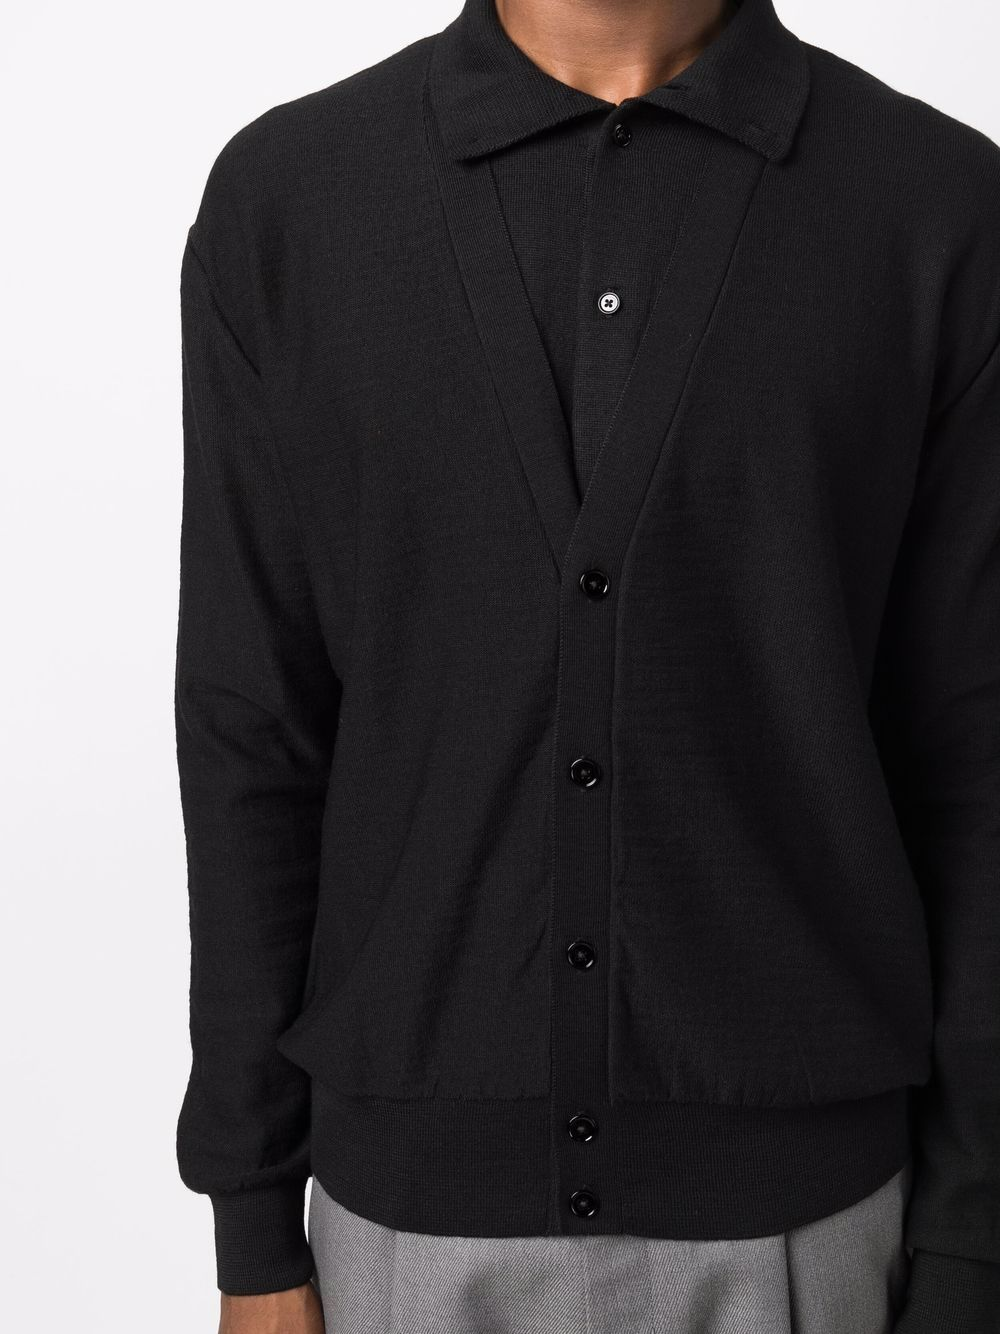 double layer cardigan man black LEMAIRE | Sweaters | M 213 KN319 LK087999